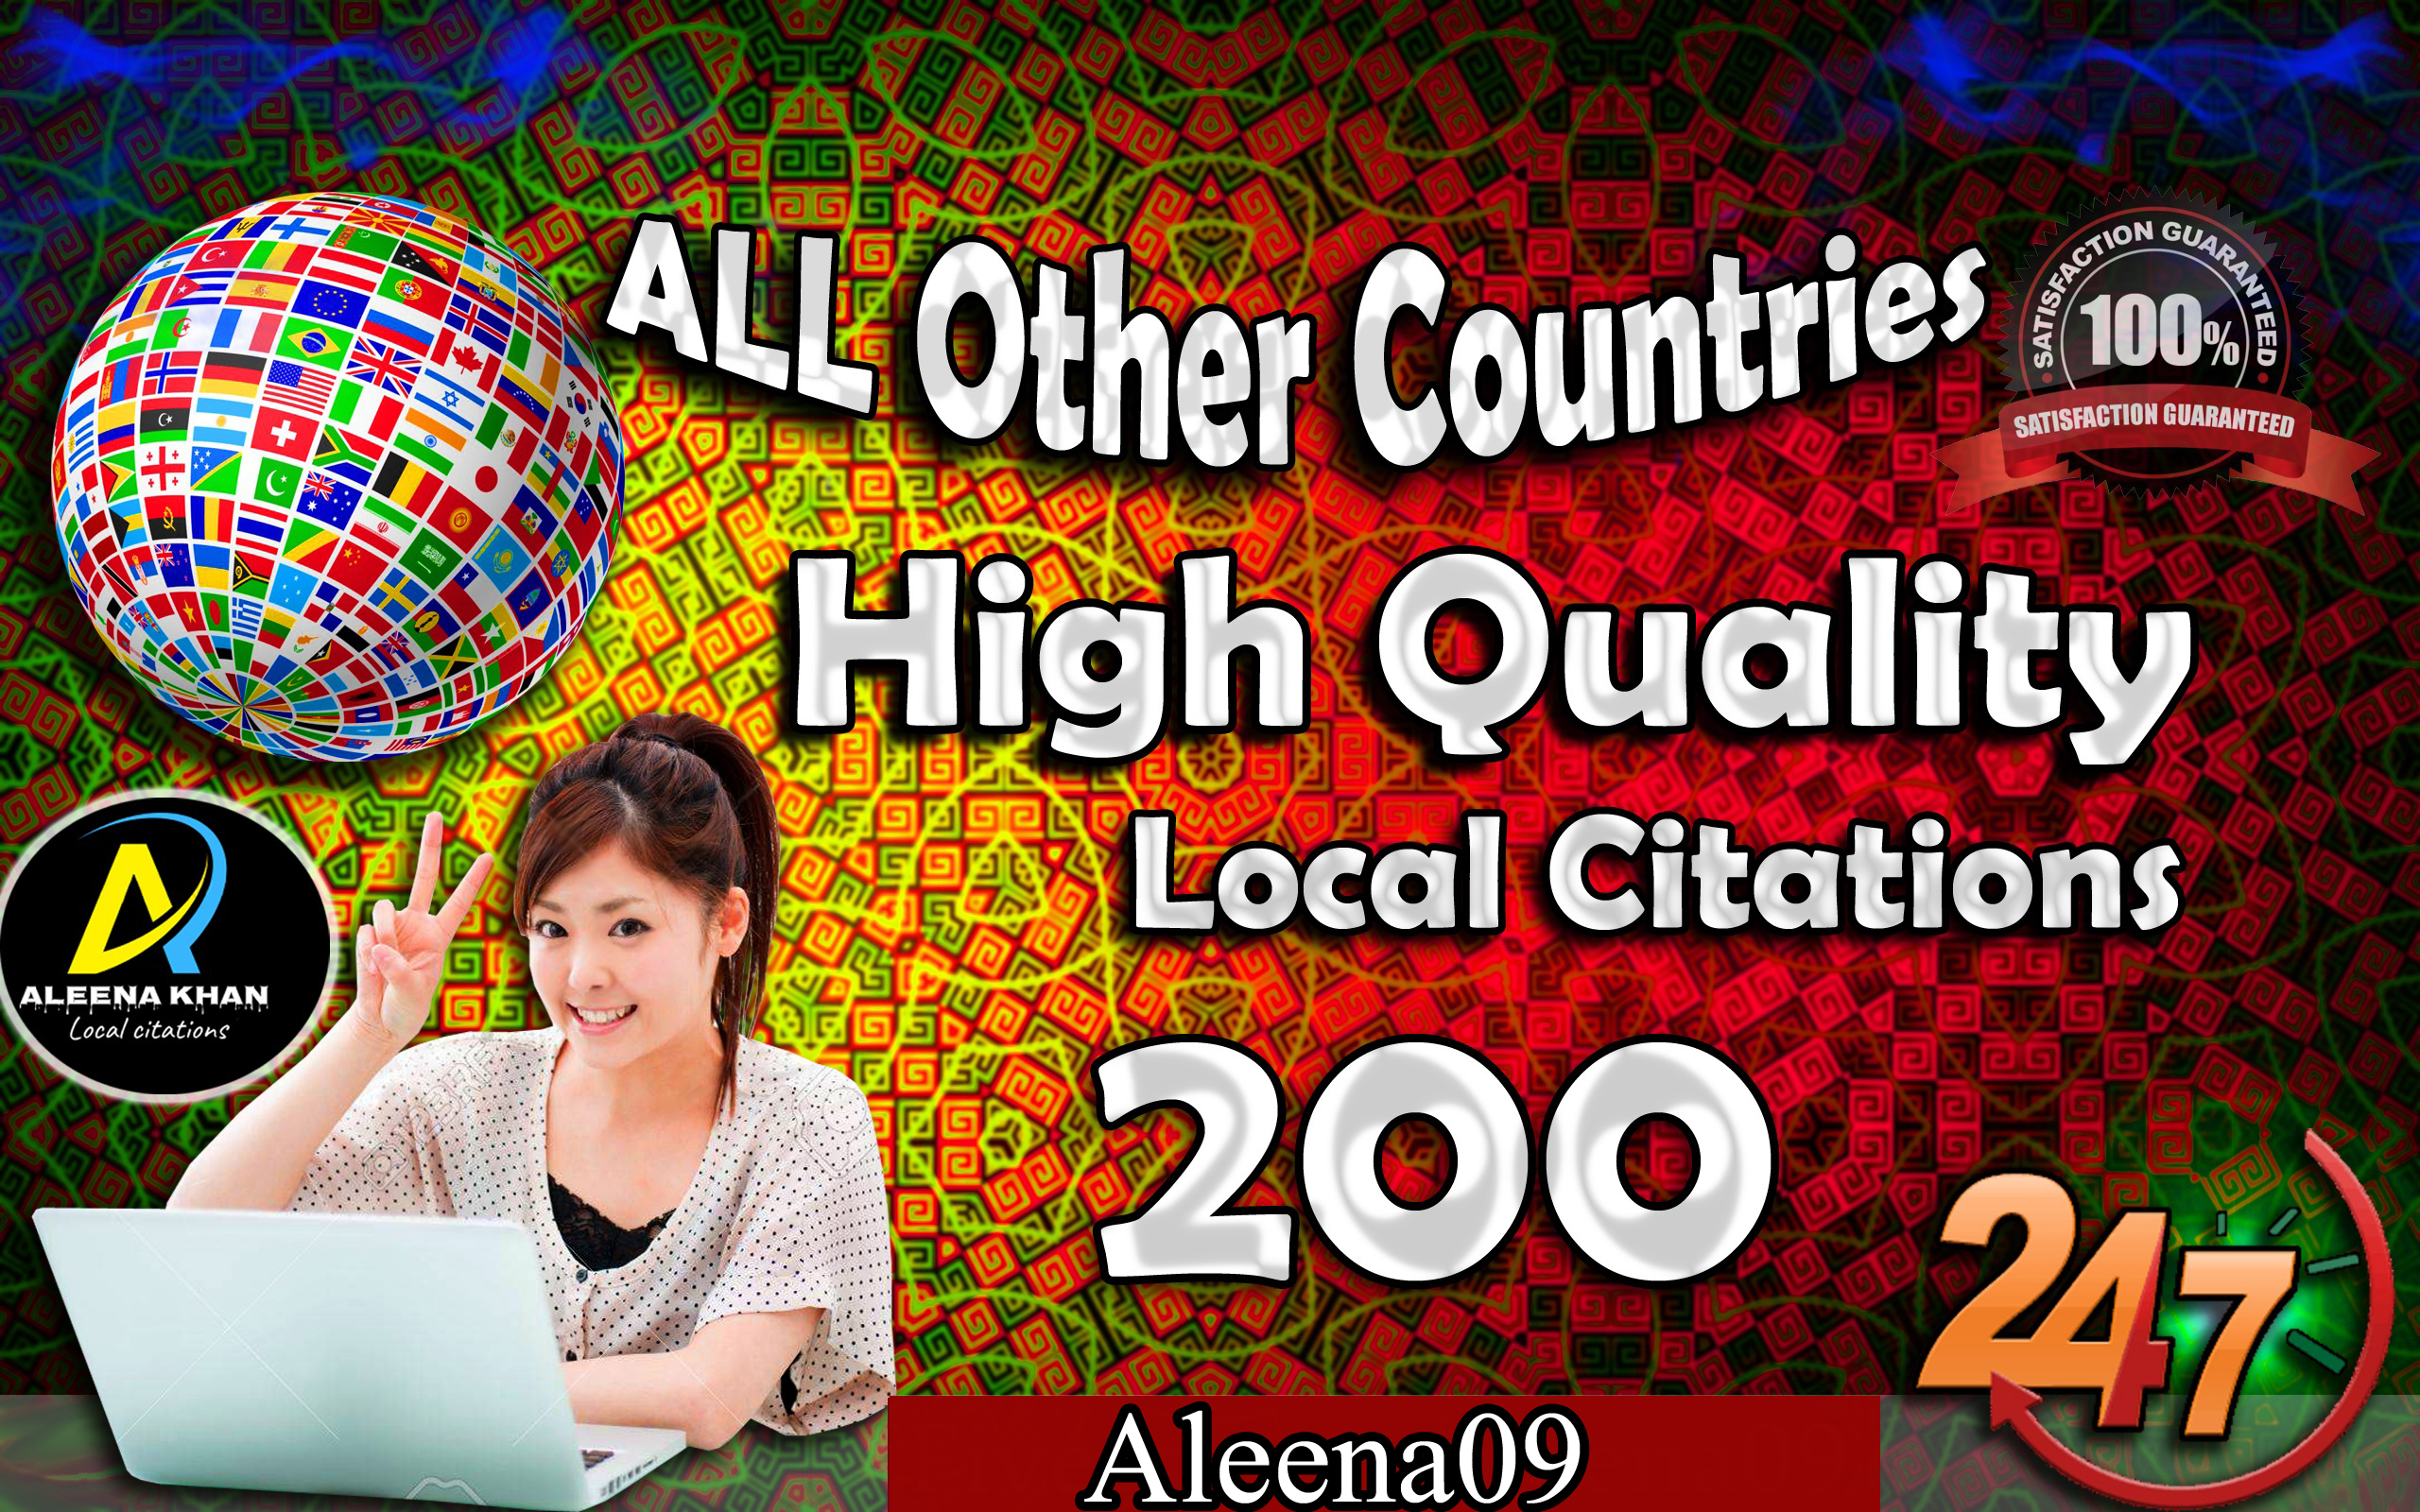 I will create 200 local citations for all other countries